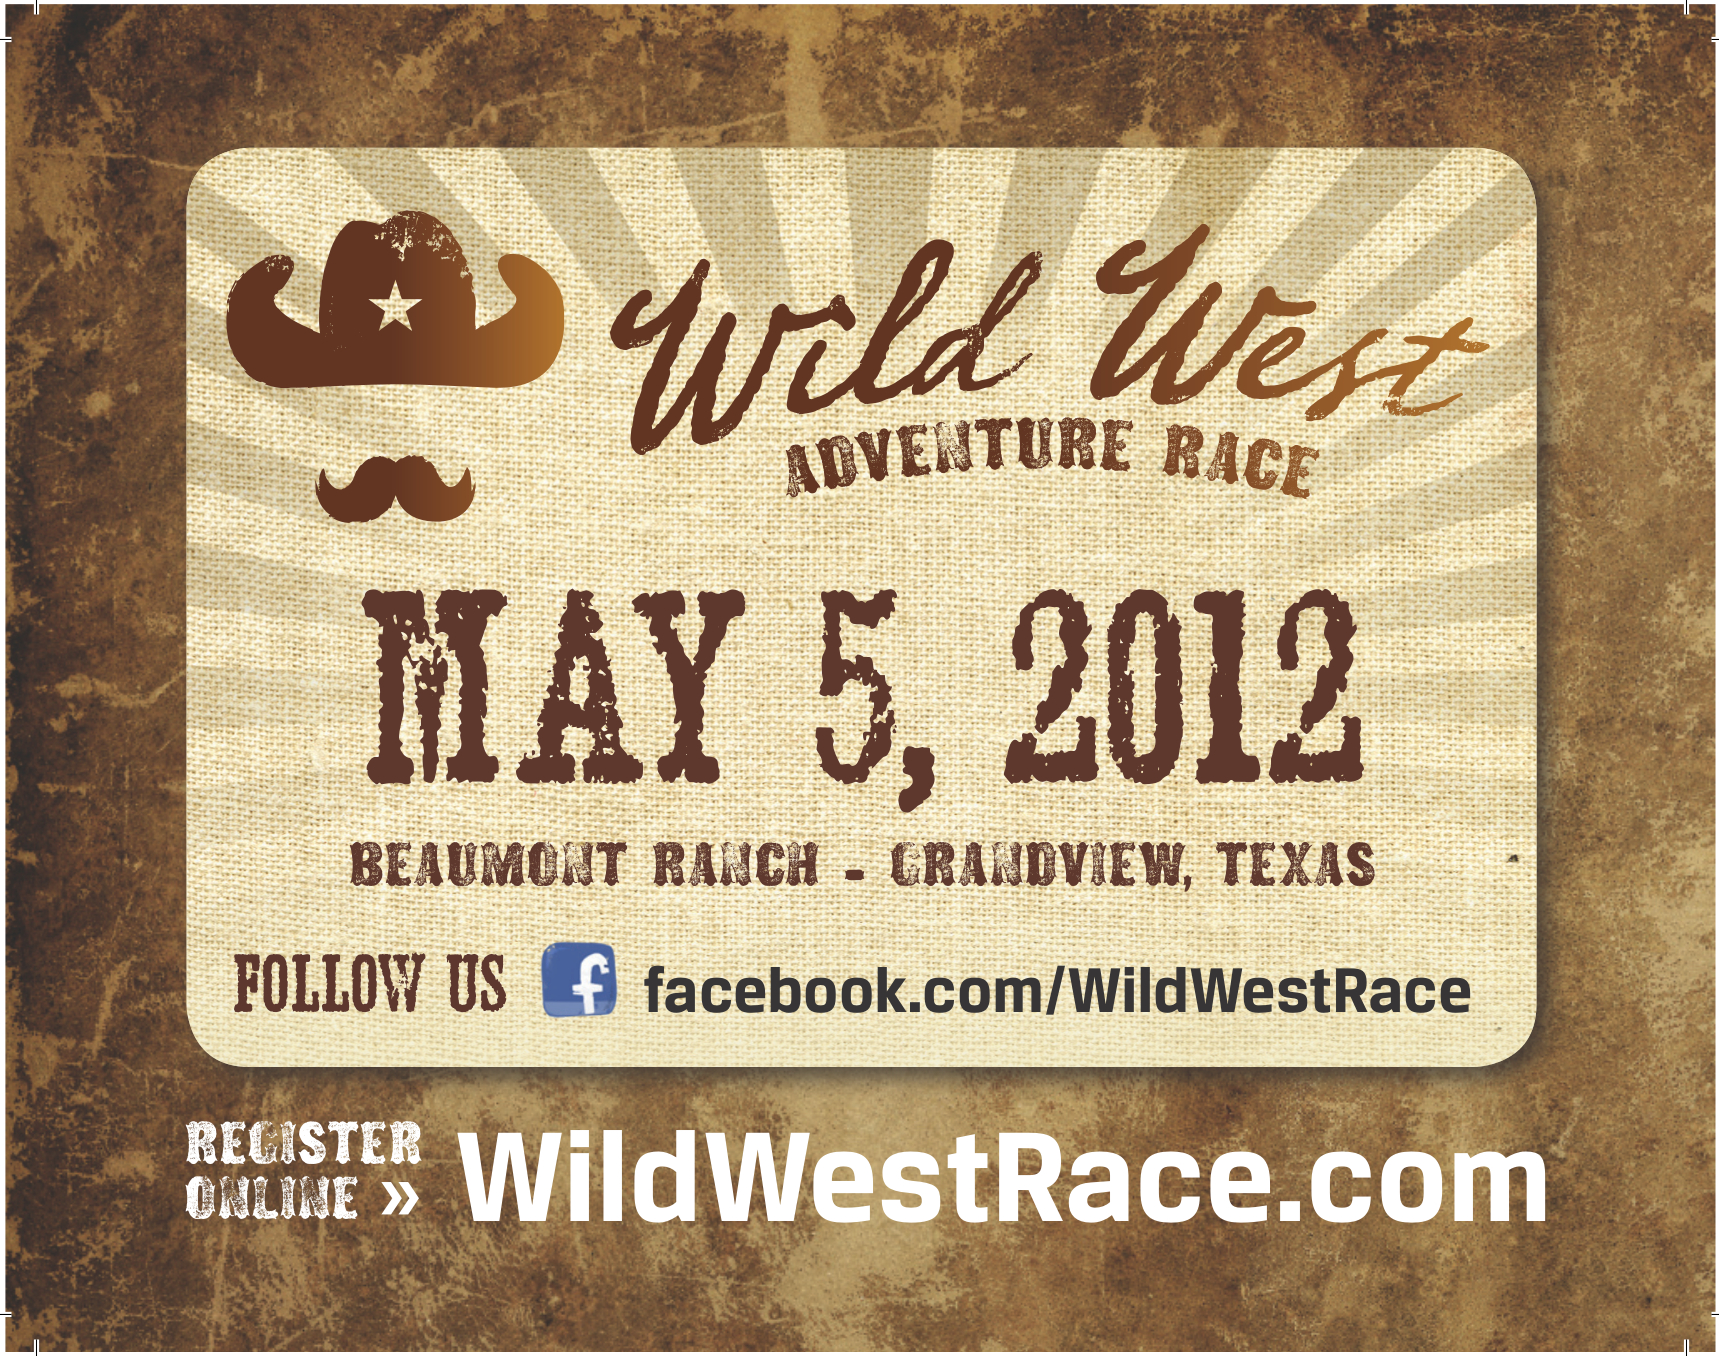 Mud Run Flyer - Click To View